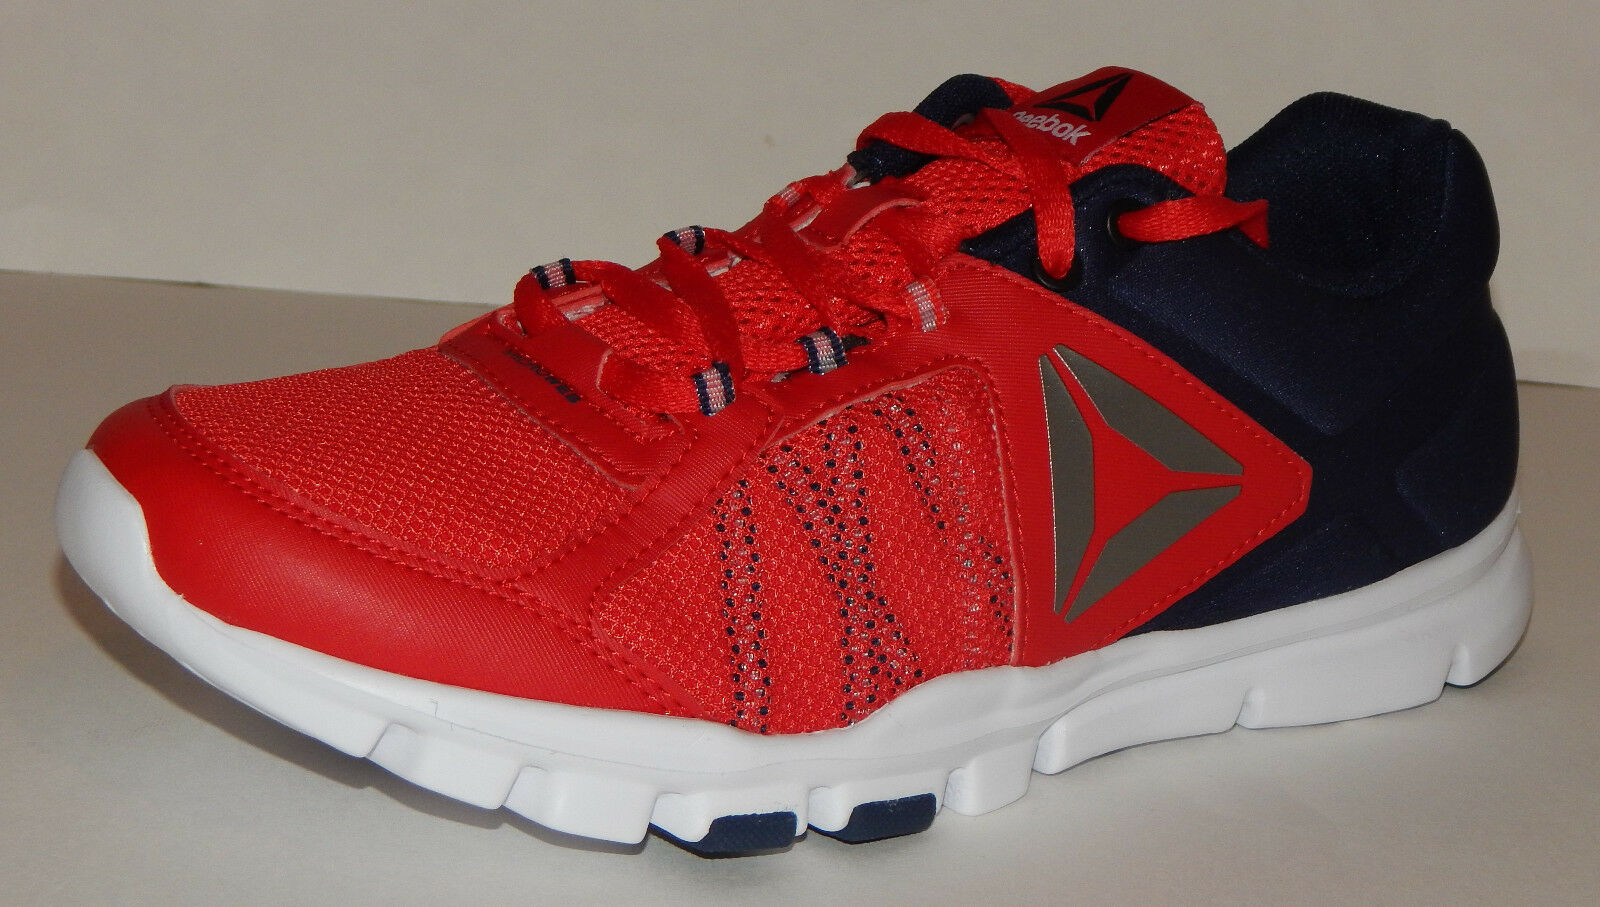 Reebok YOURFLEX Train 9.0 MT Men's shoes NEW BS7108 Red Navy White Size 8.5